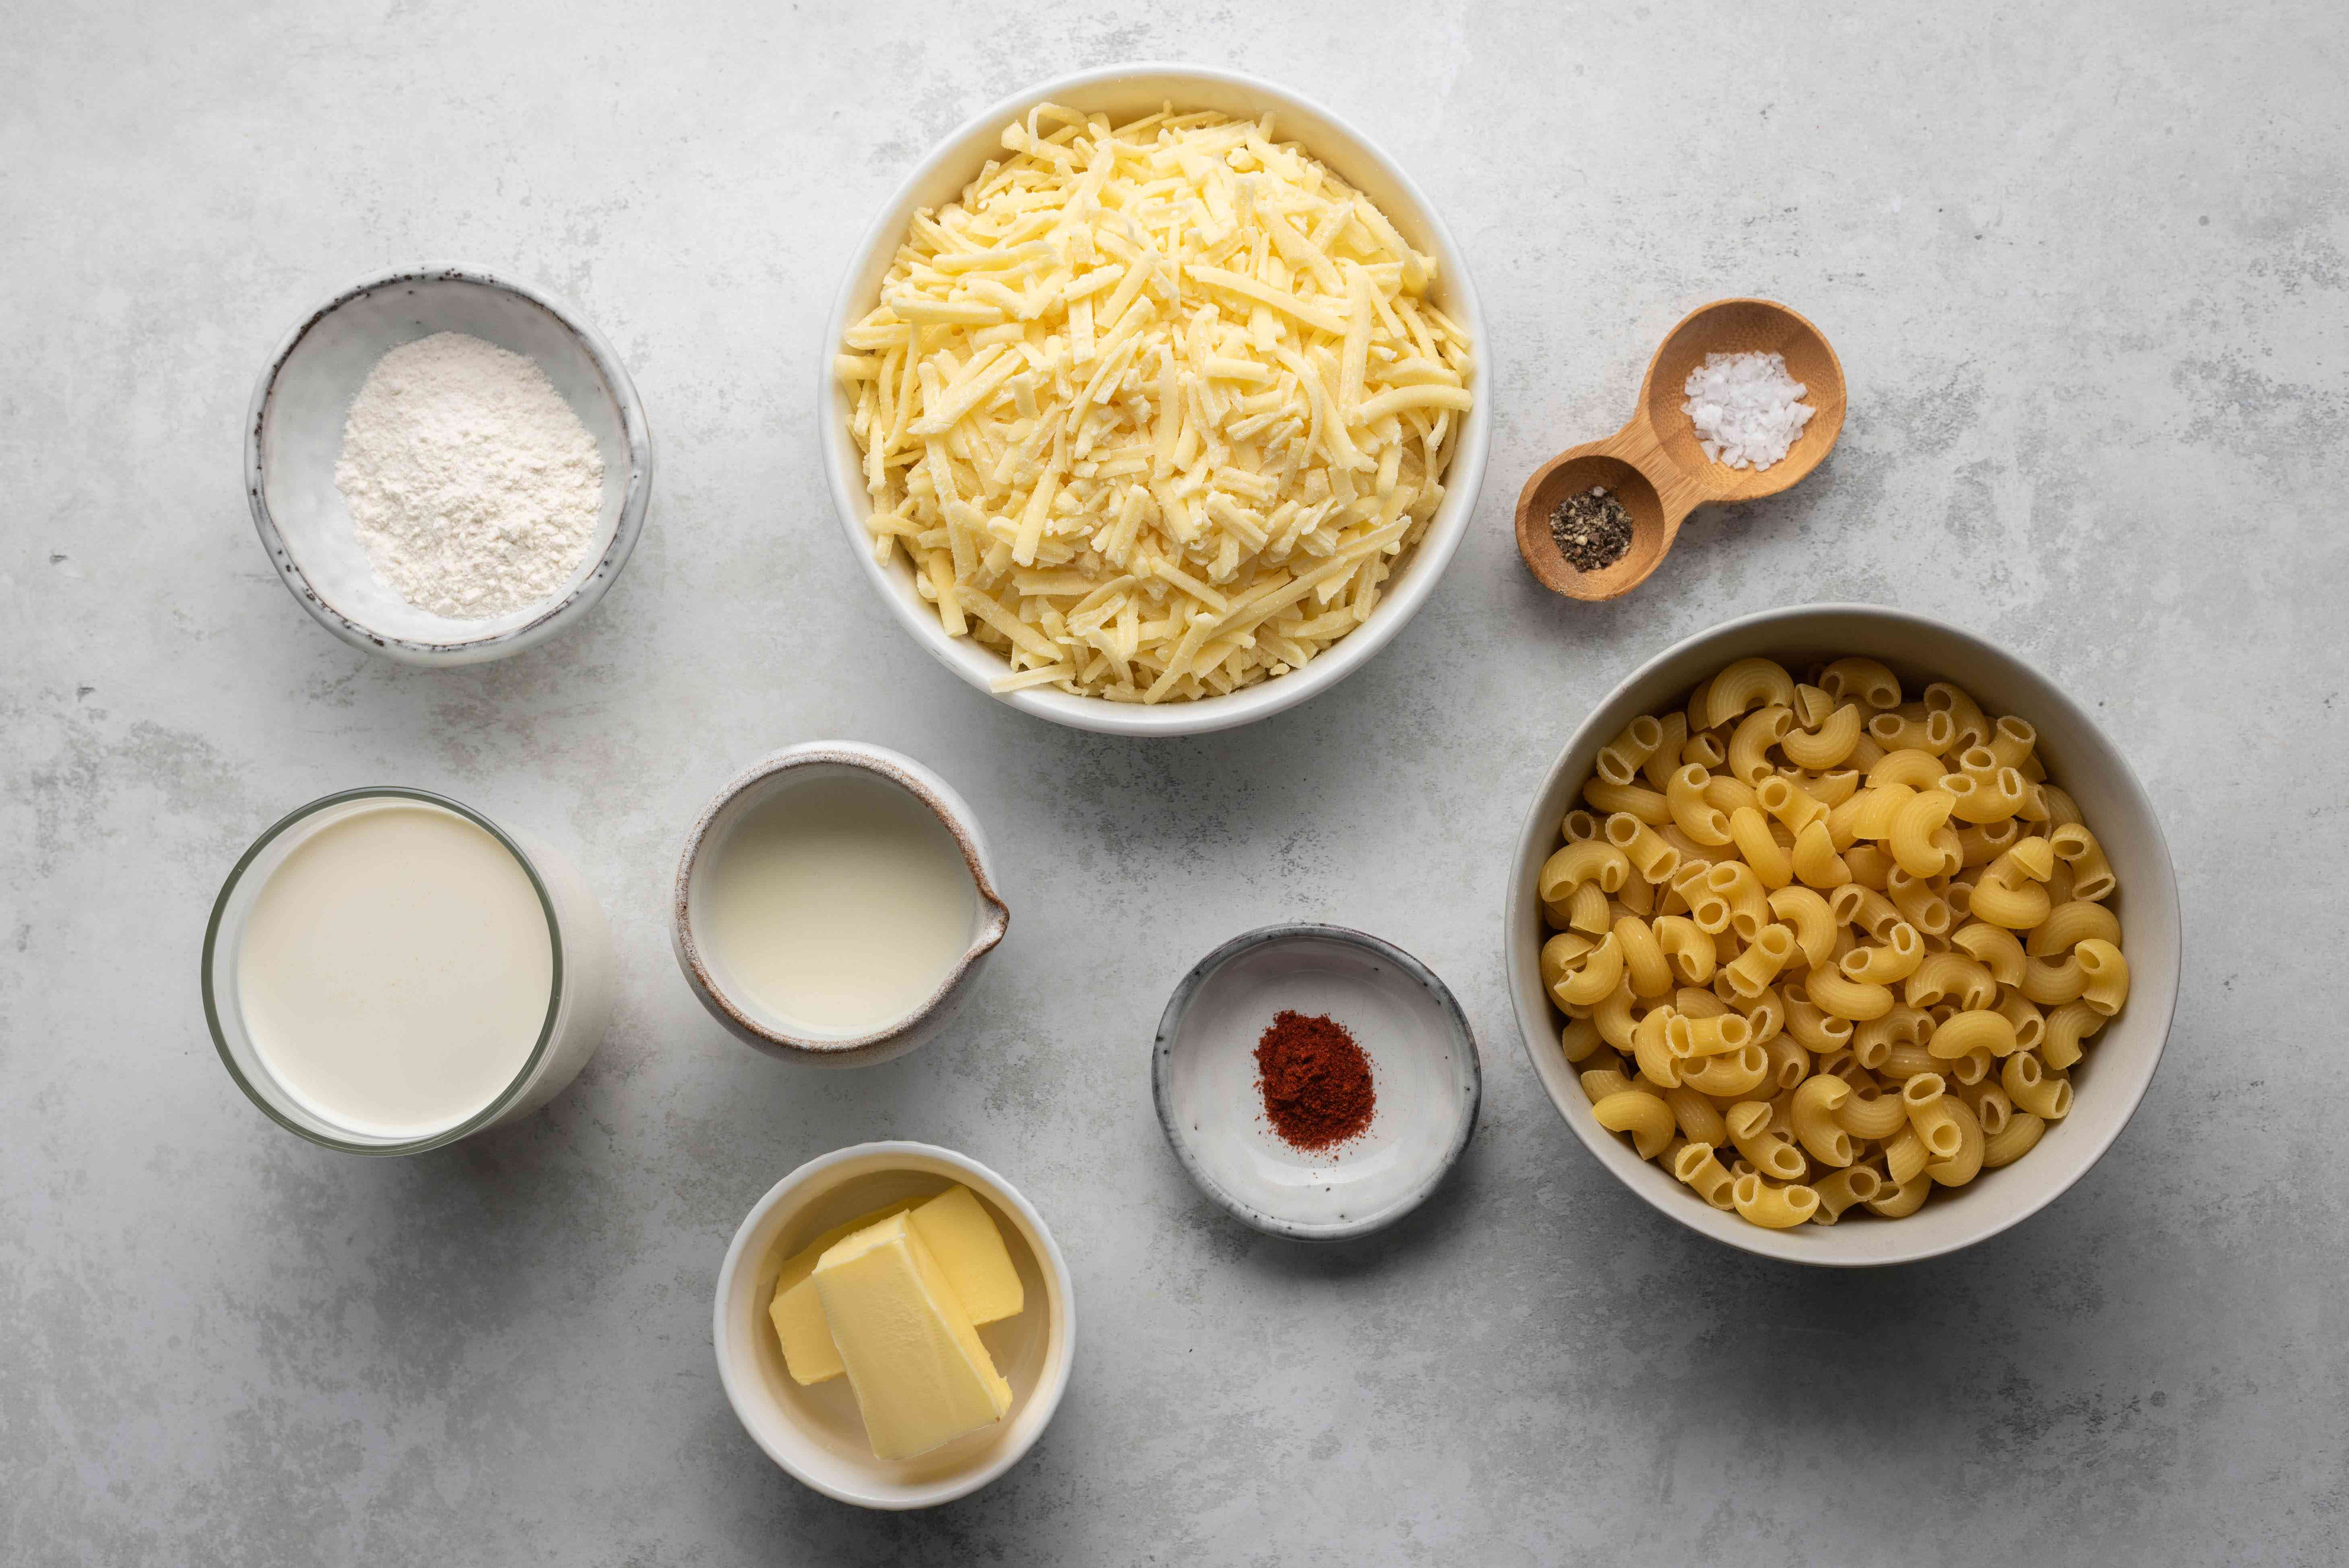 Basic Baked Macaroni and Cheese With Variations ingredients